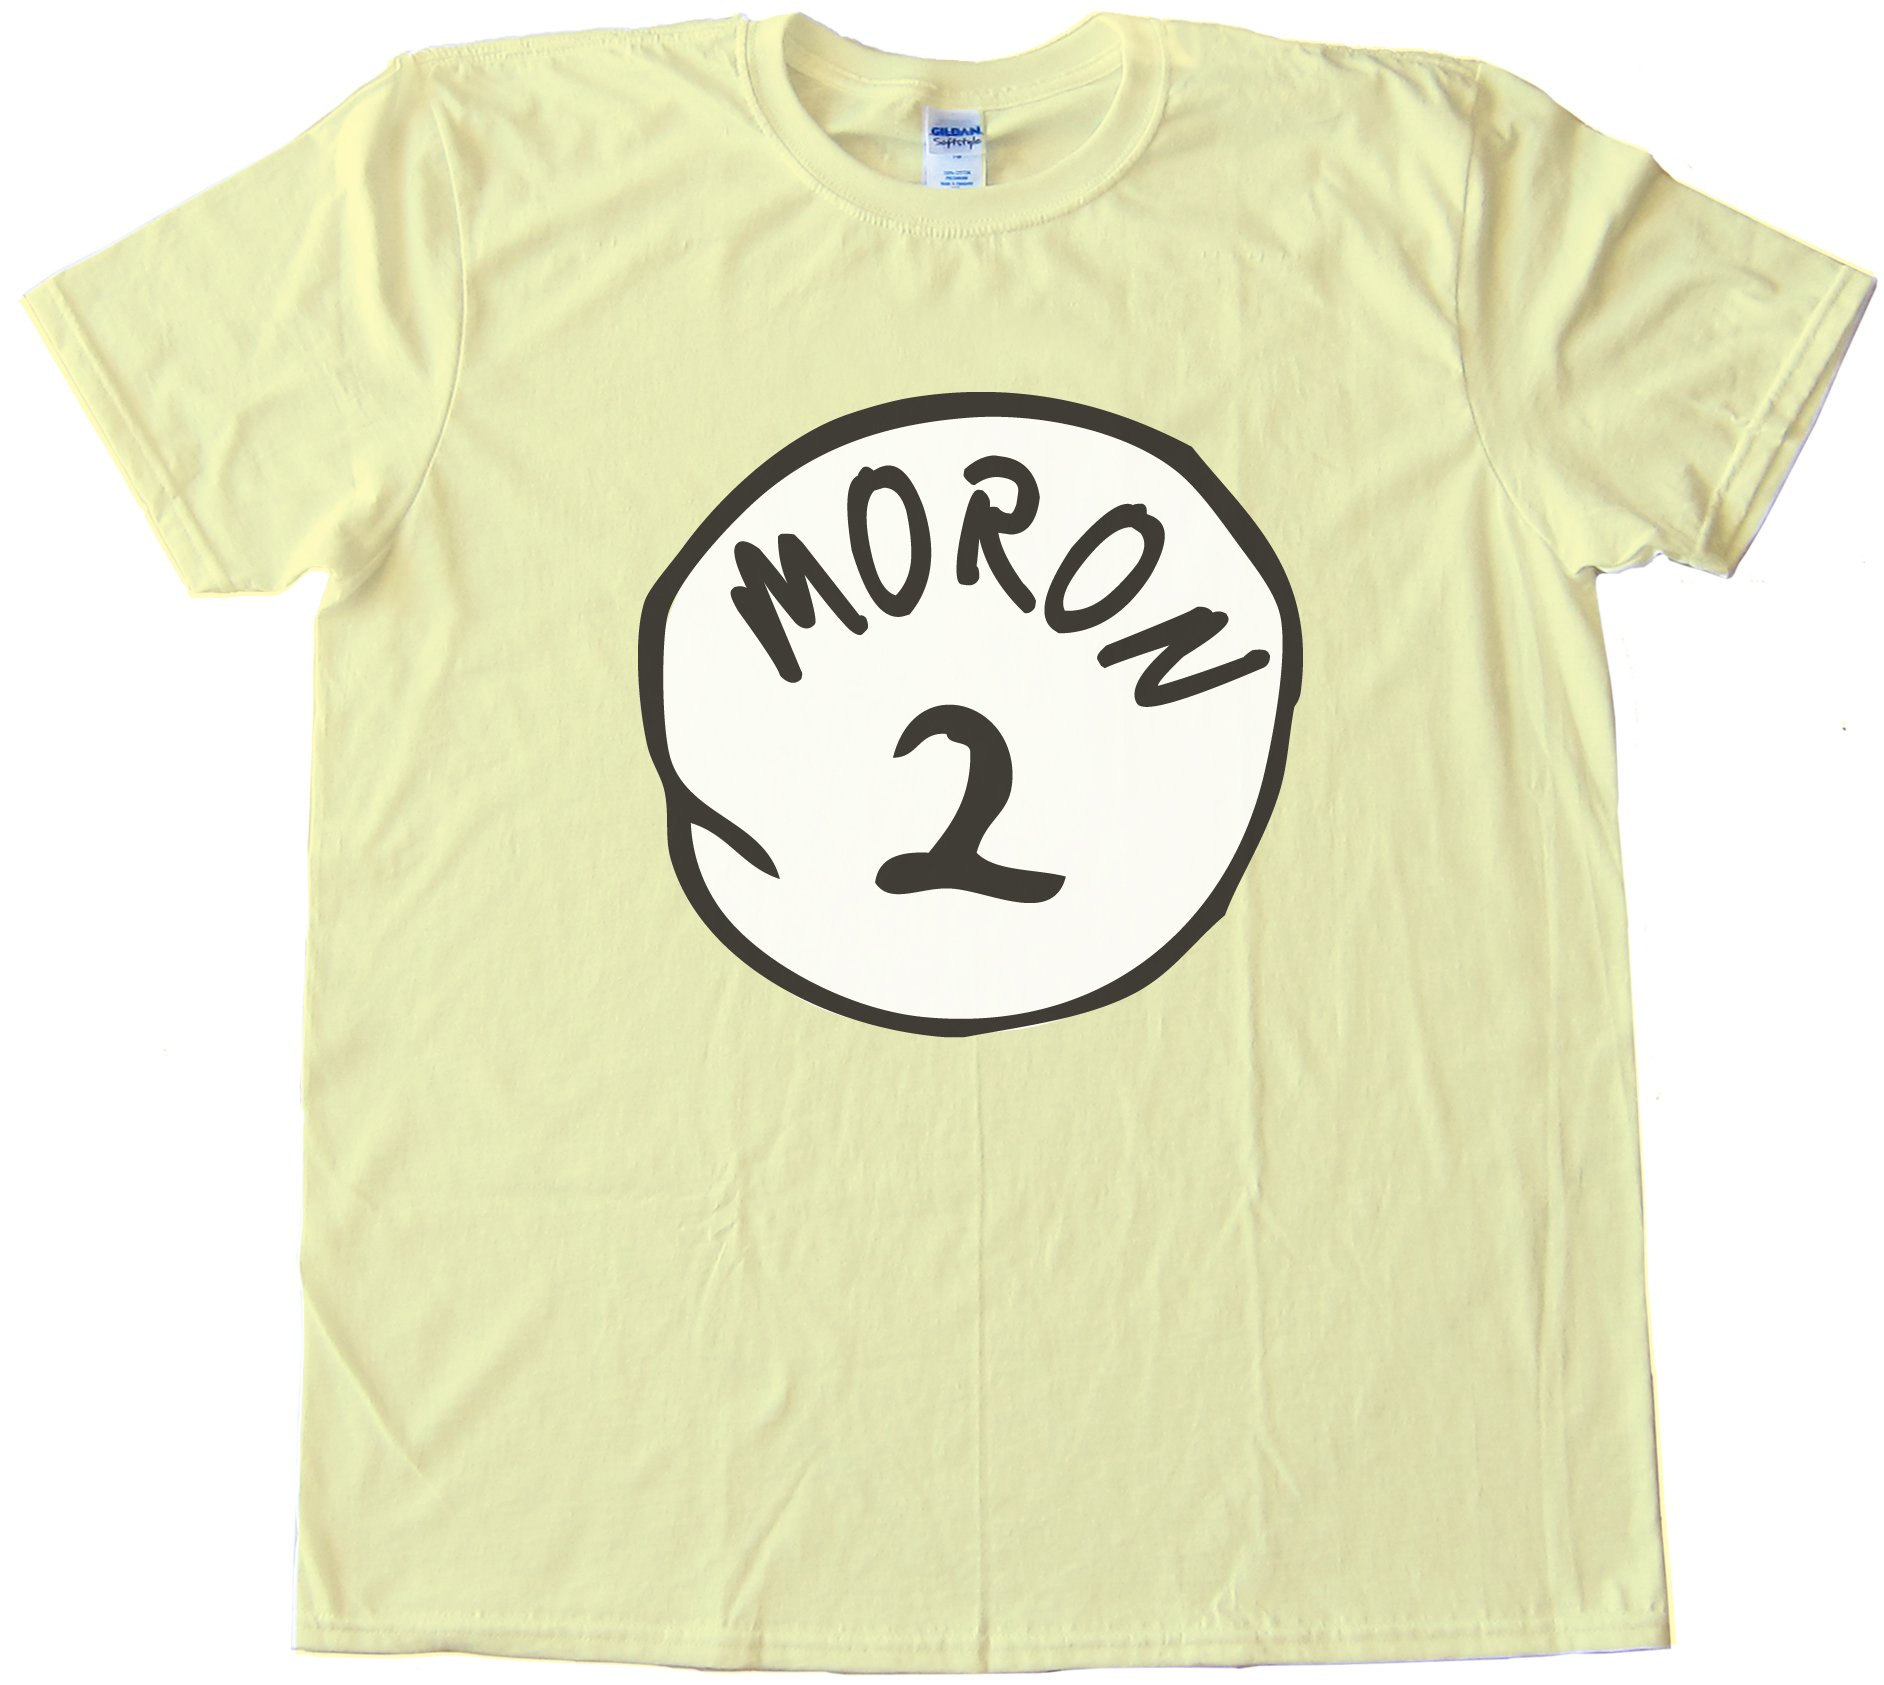 Moron 2 Perfect Match For Moron 1! - Parody Of Thing 1 Dr. Seuss Tee Shirt